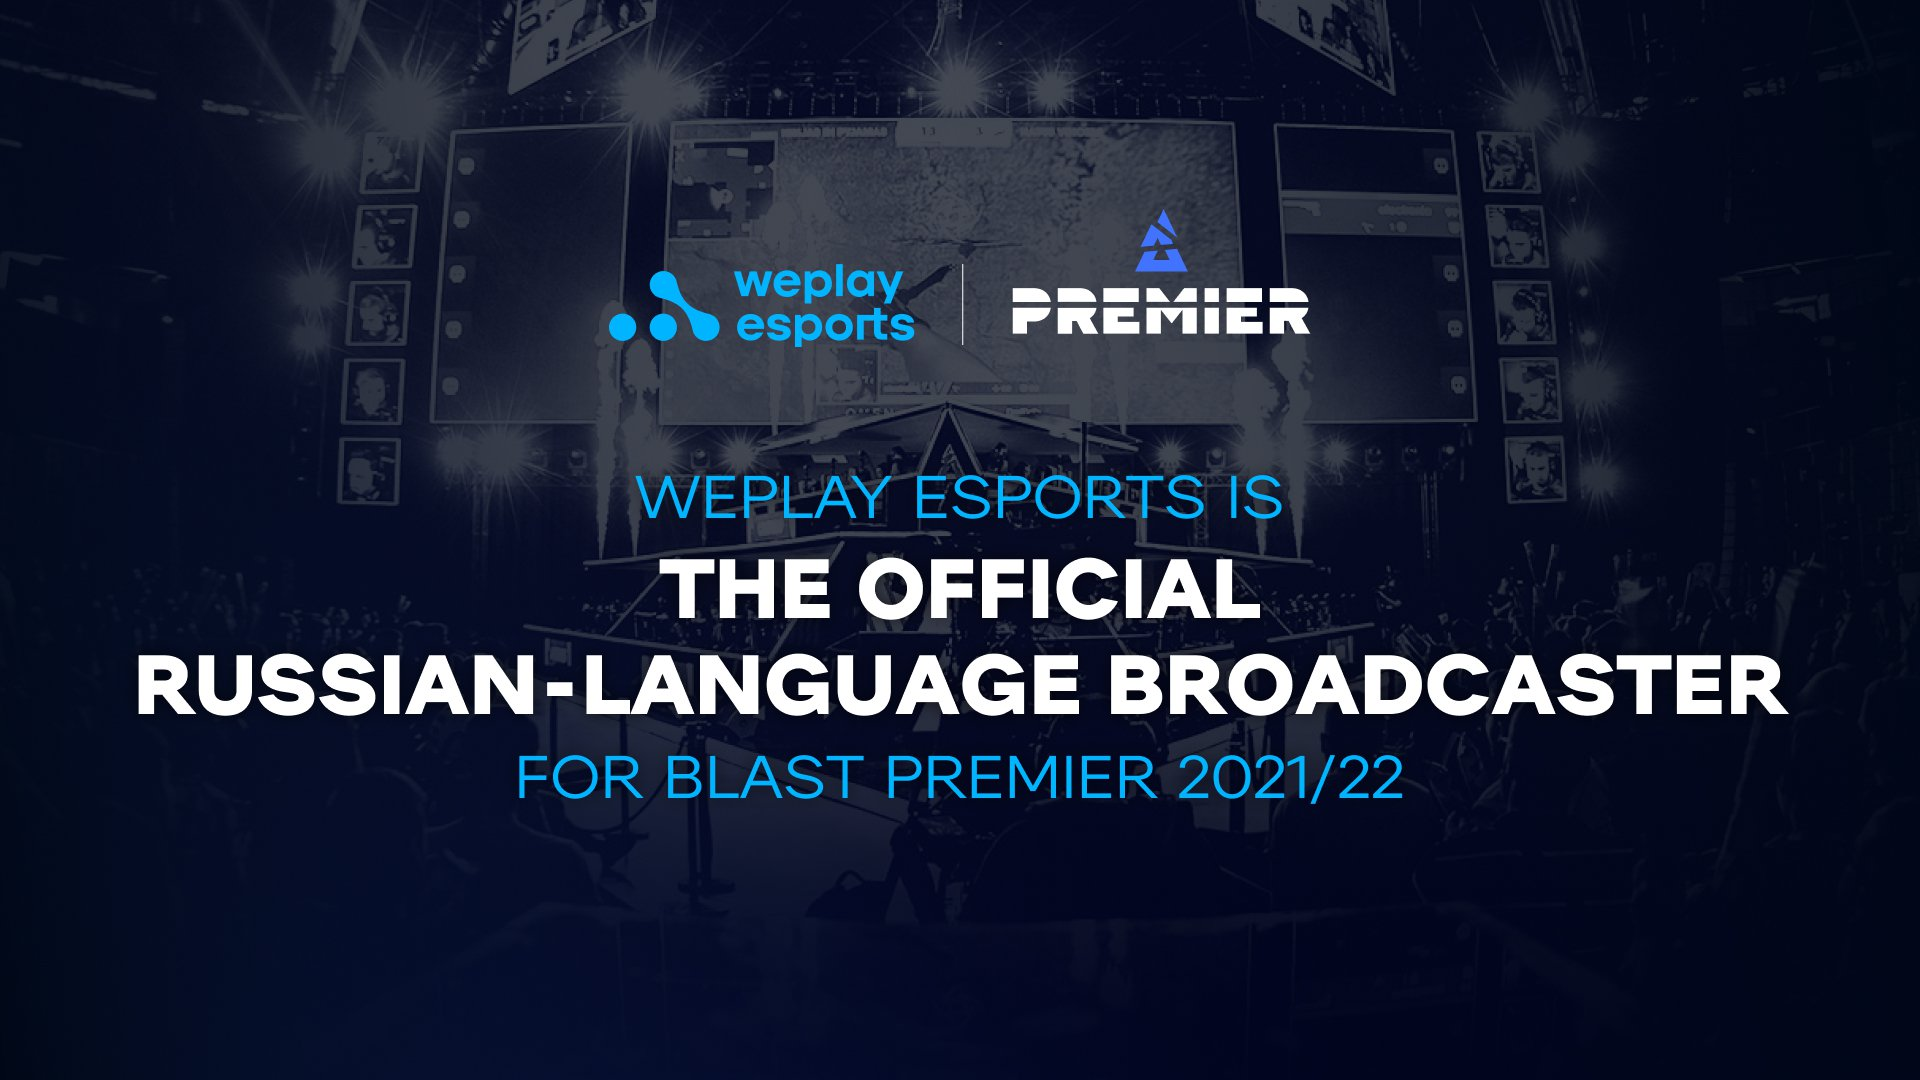 WePlay Esports is the official Russian-language broadcaster for BLAST Premier 2021/22. Image: WePlay Holding